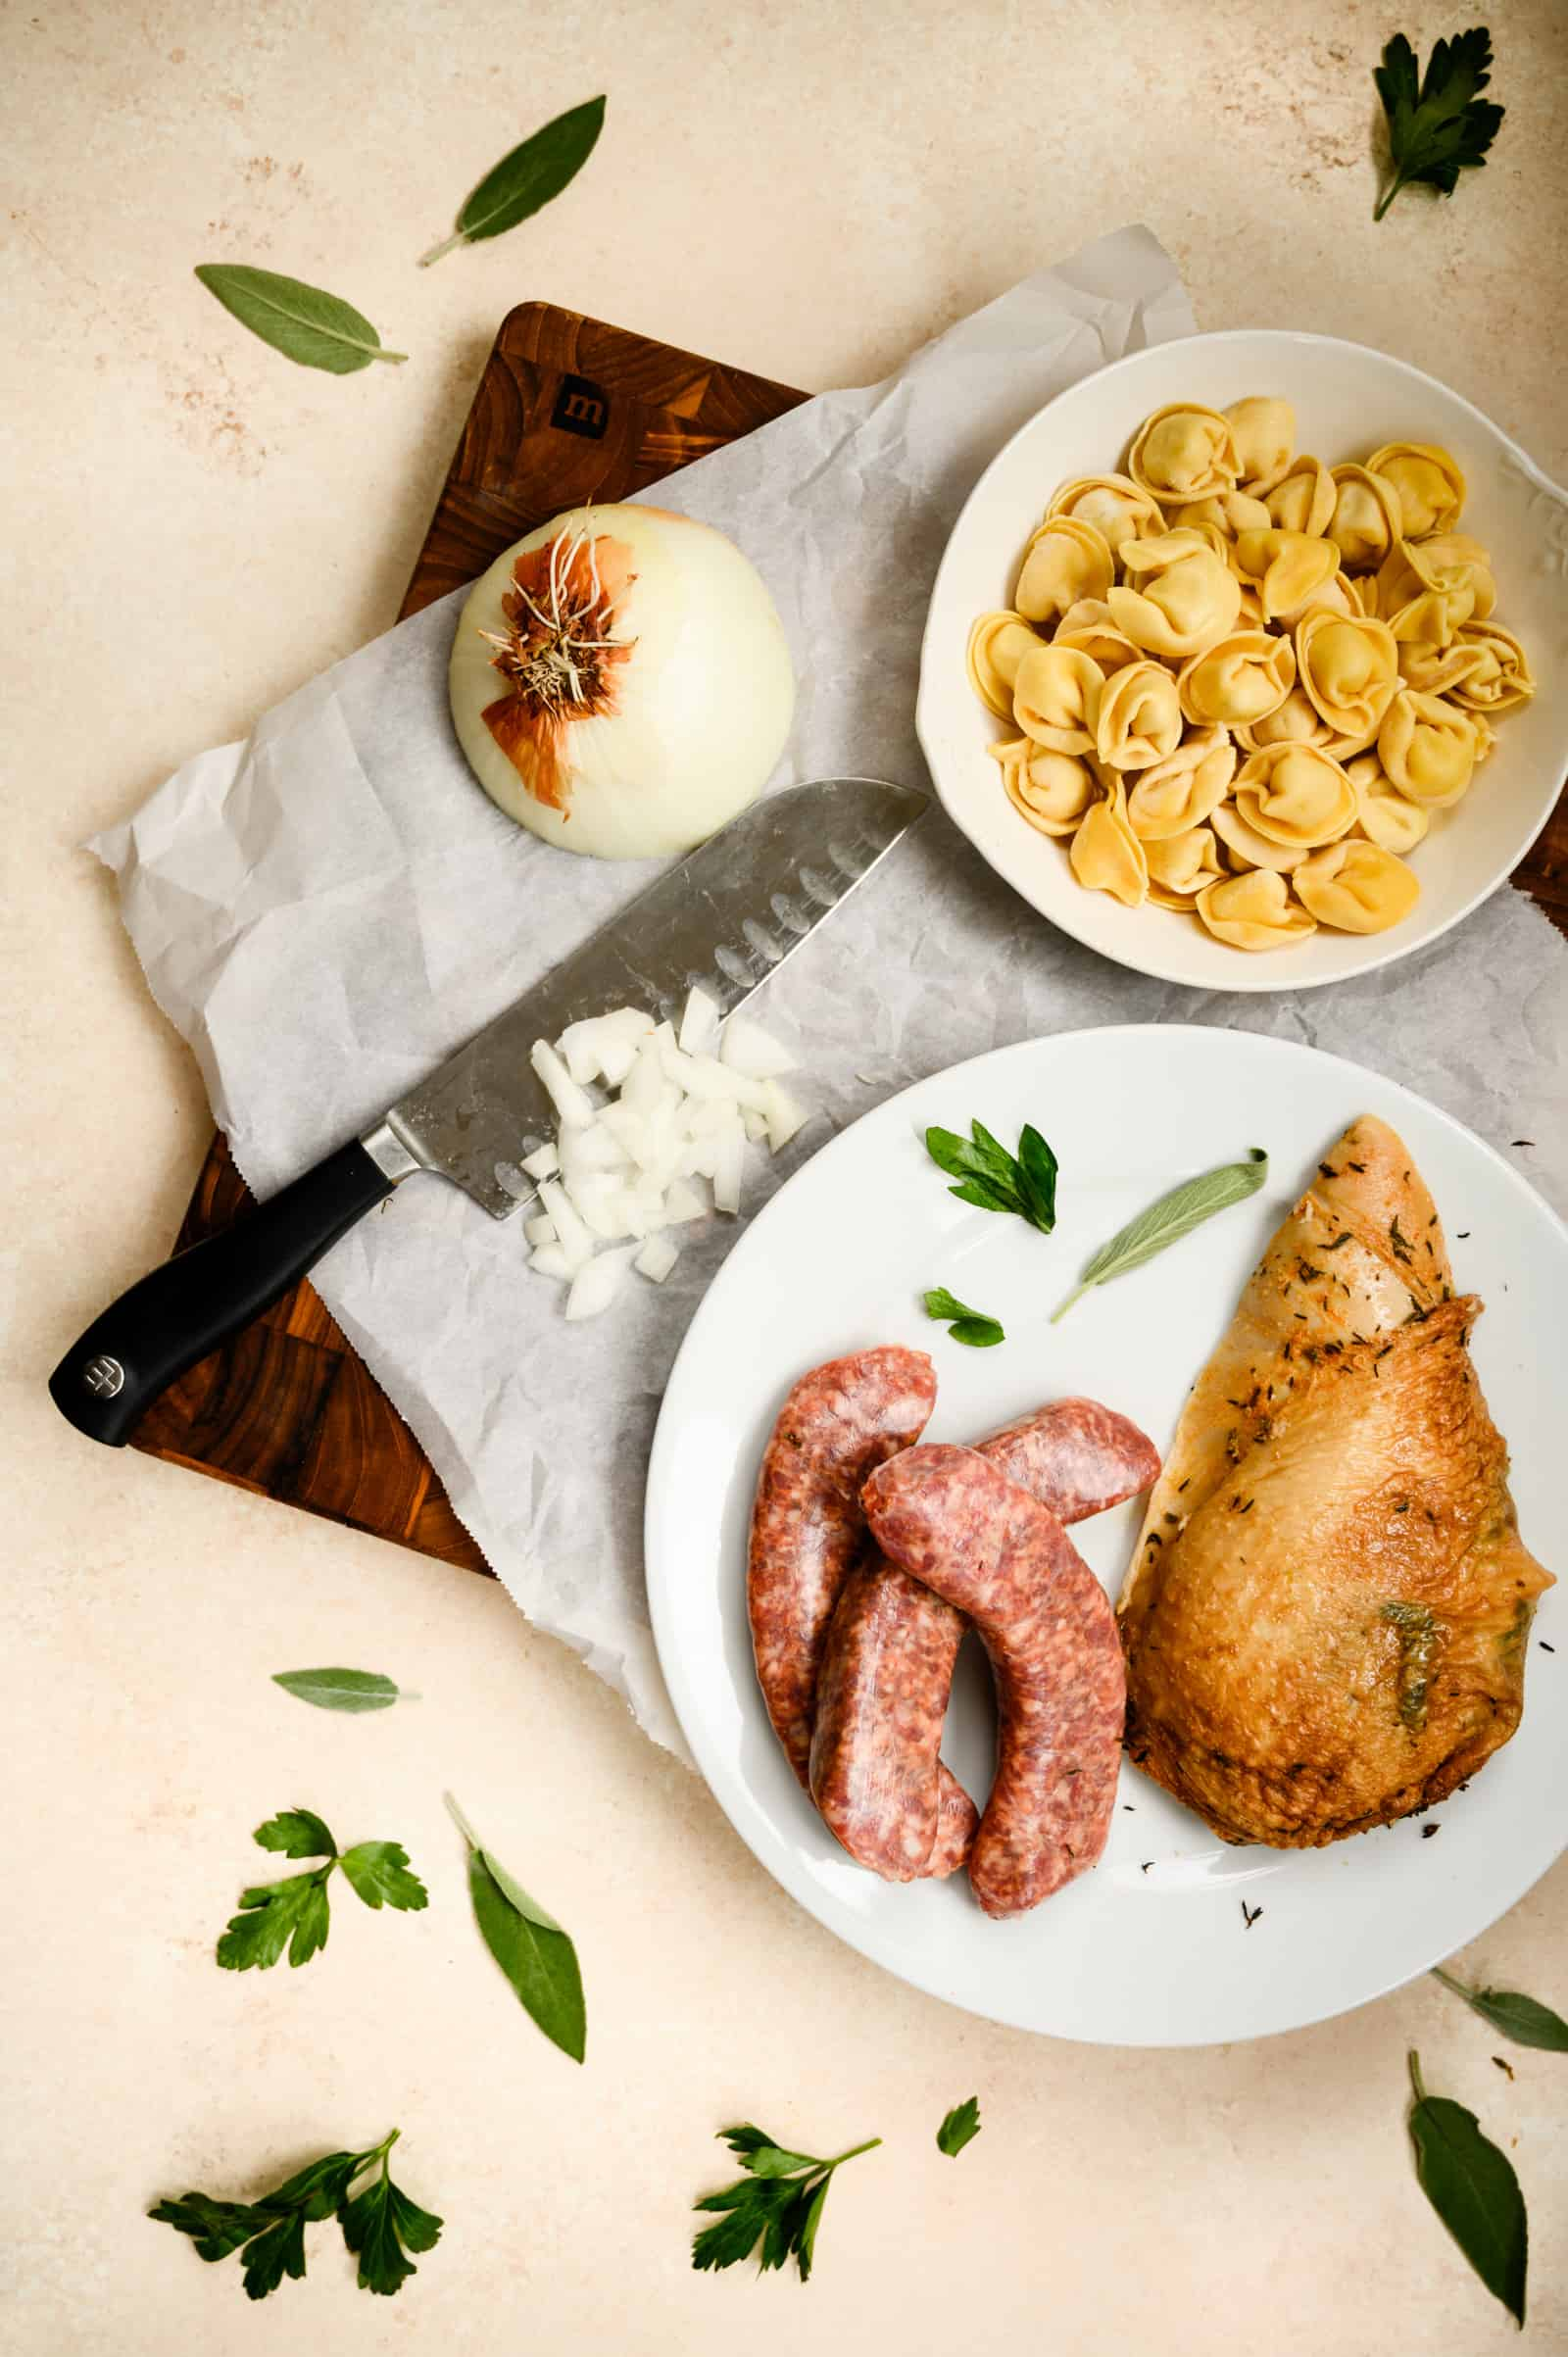 cutting board with knife, a chopped onion, white bowl of raw tortellini and white plate of turkey breast and Italian sausage